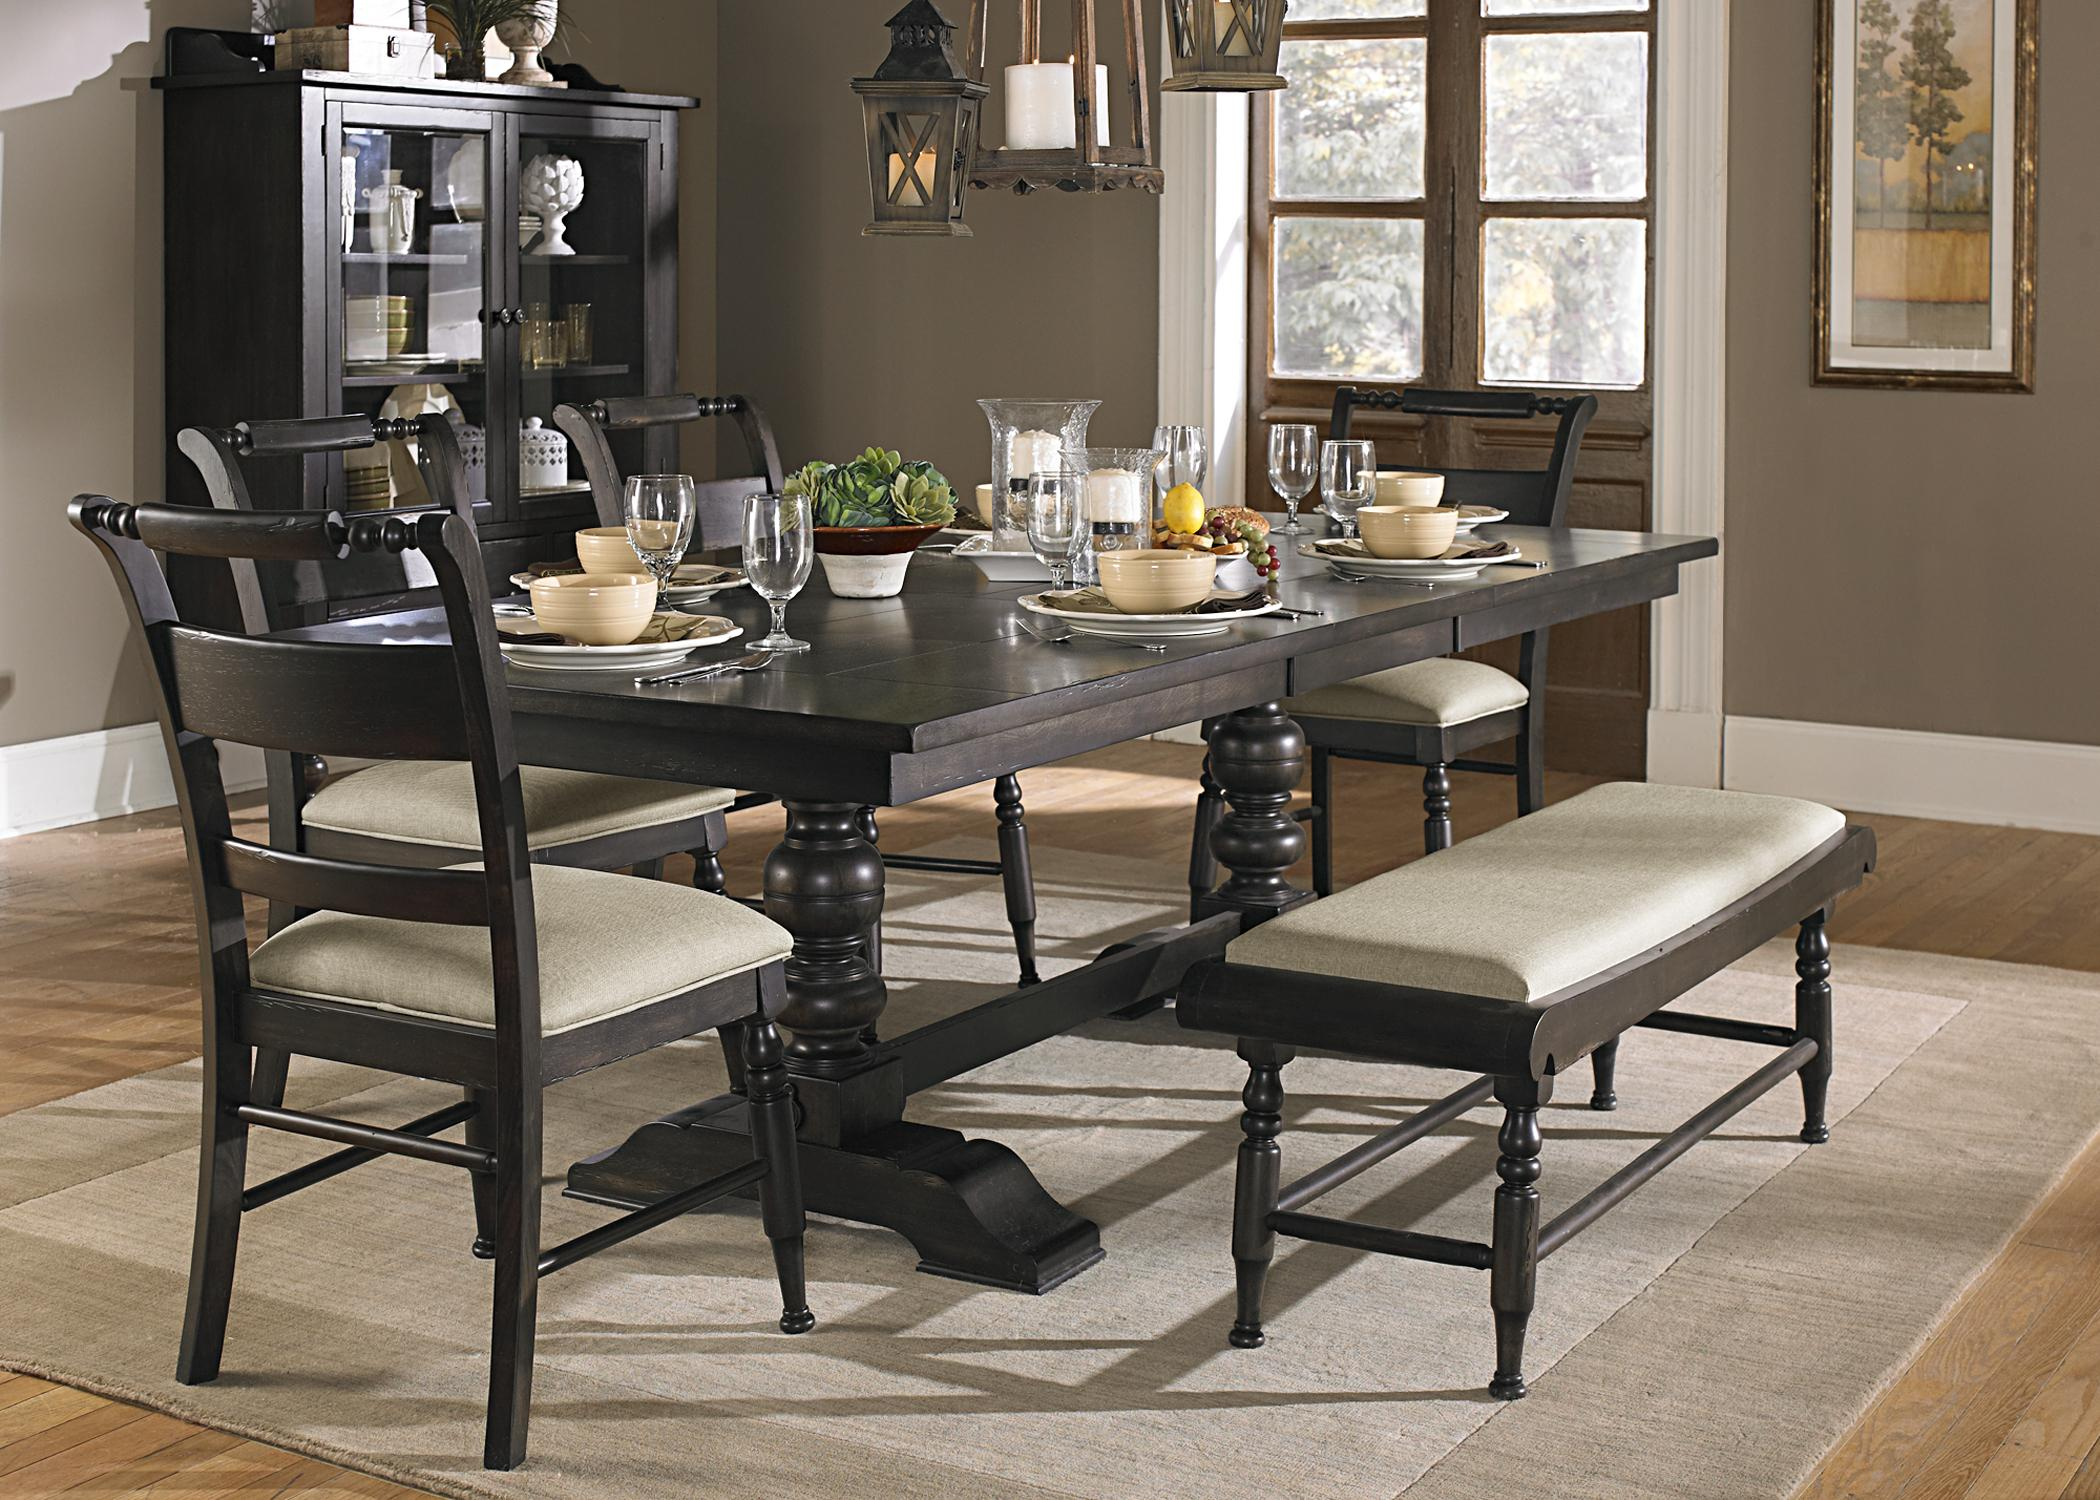 6 Piece Trestle Table Set with Bench by Liberty Furniture